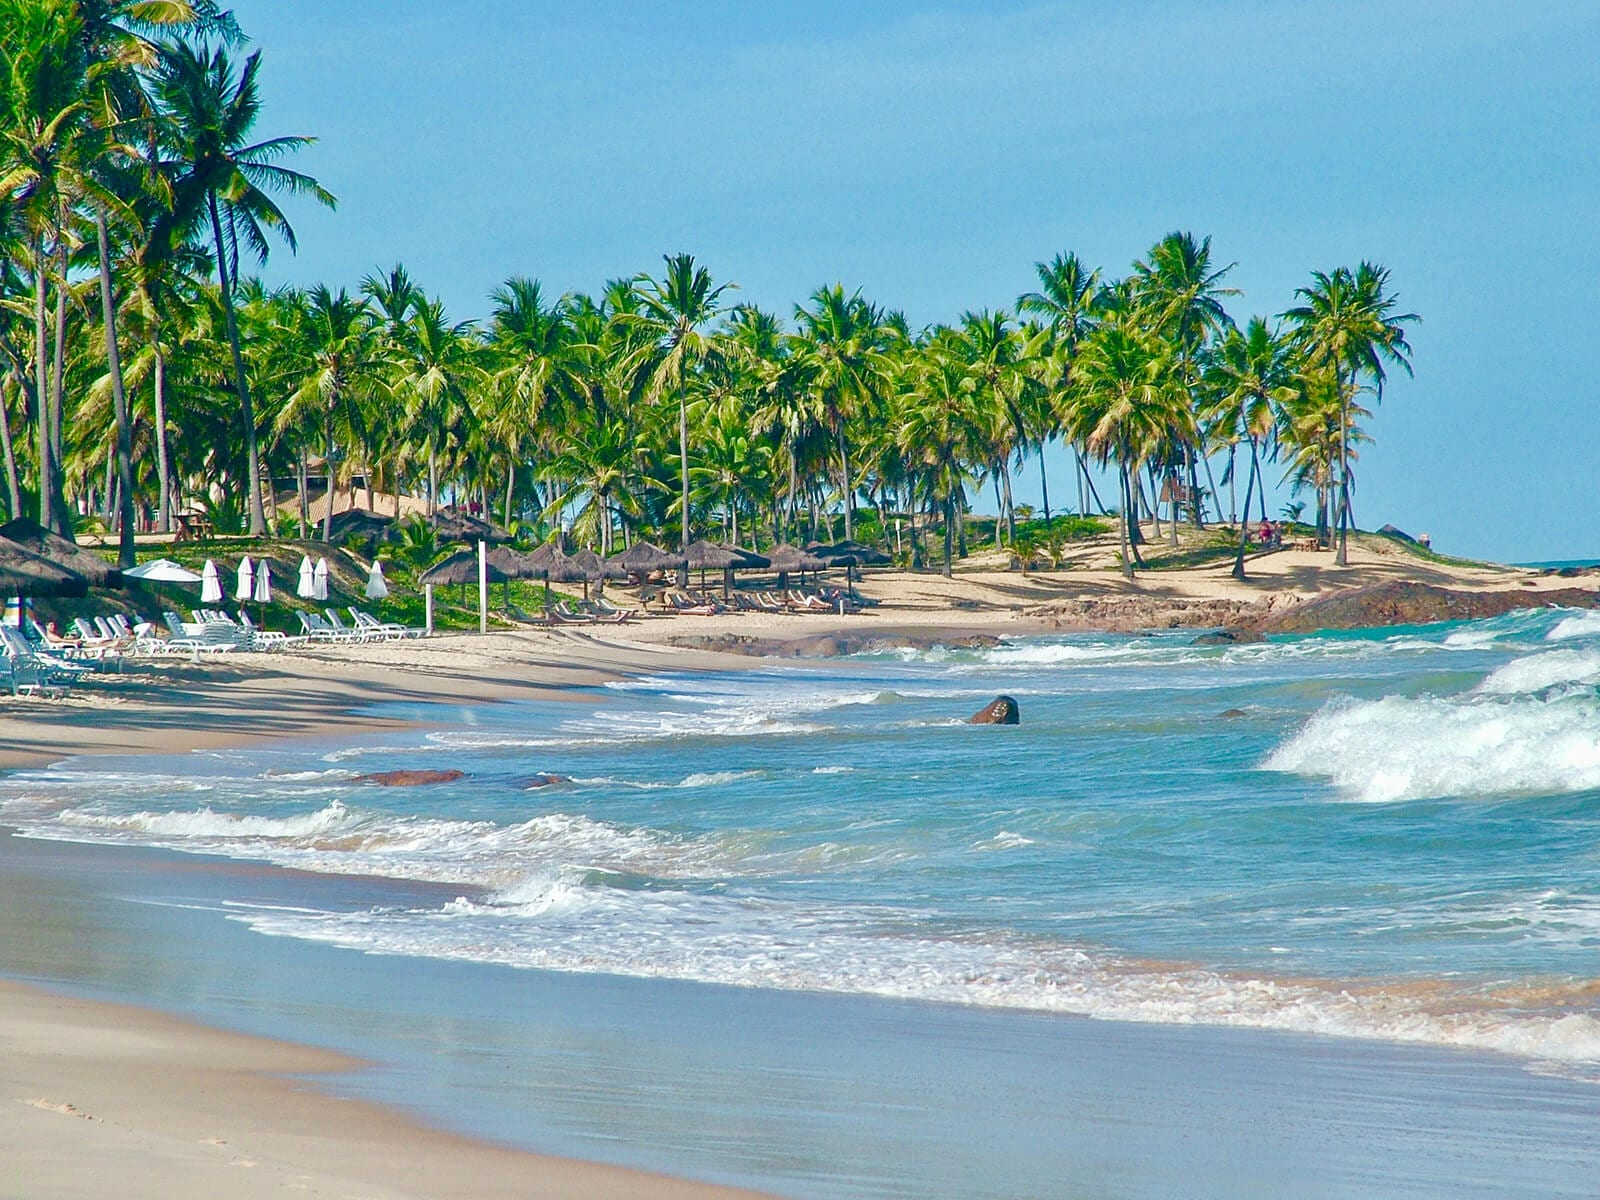 Beach in Bahia